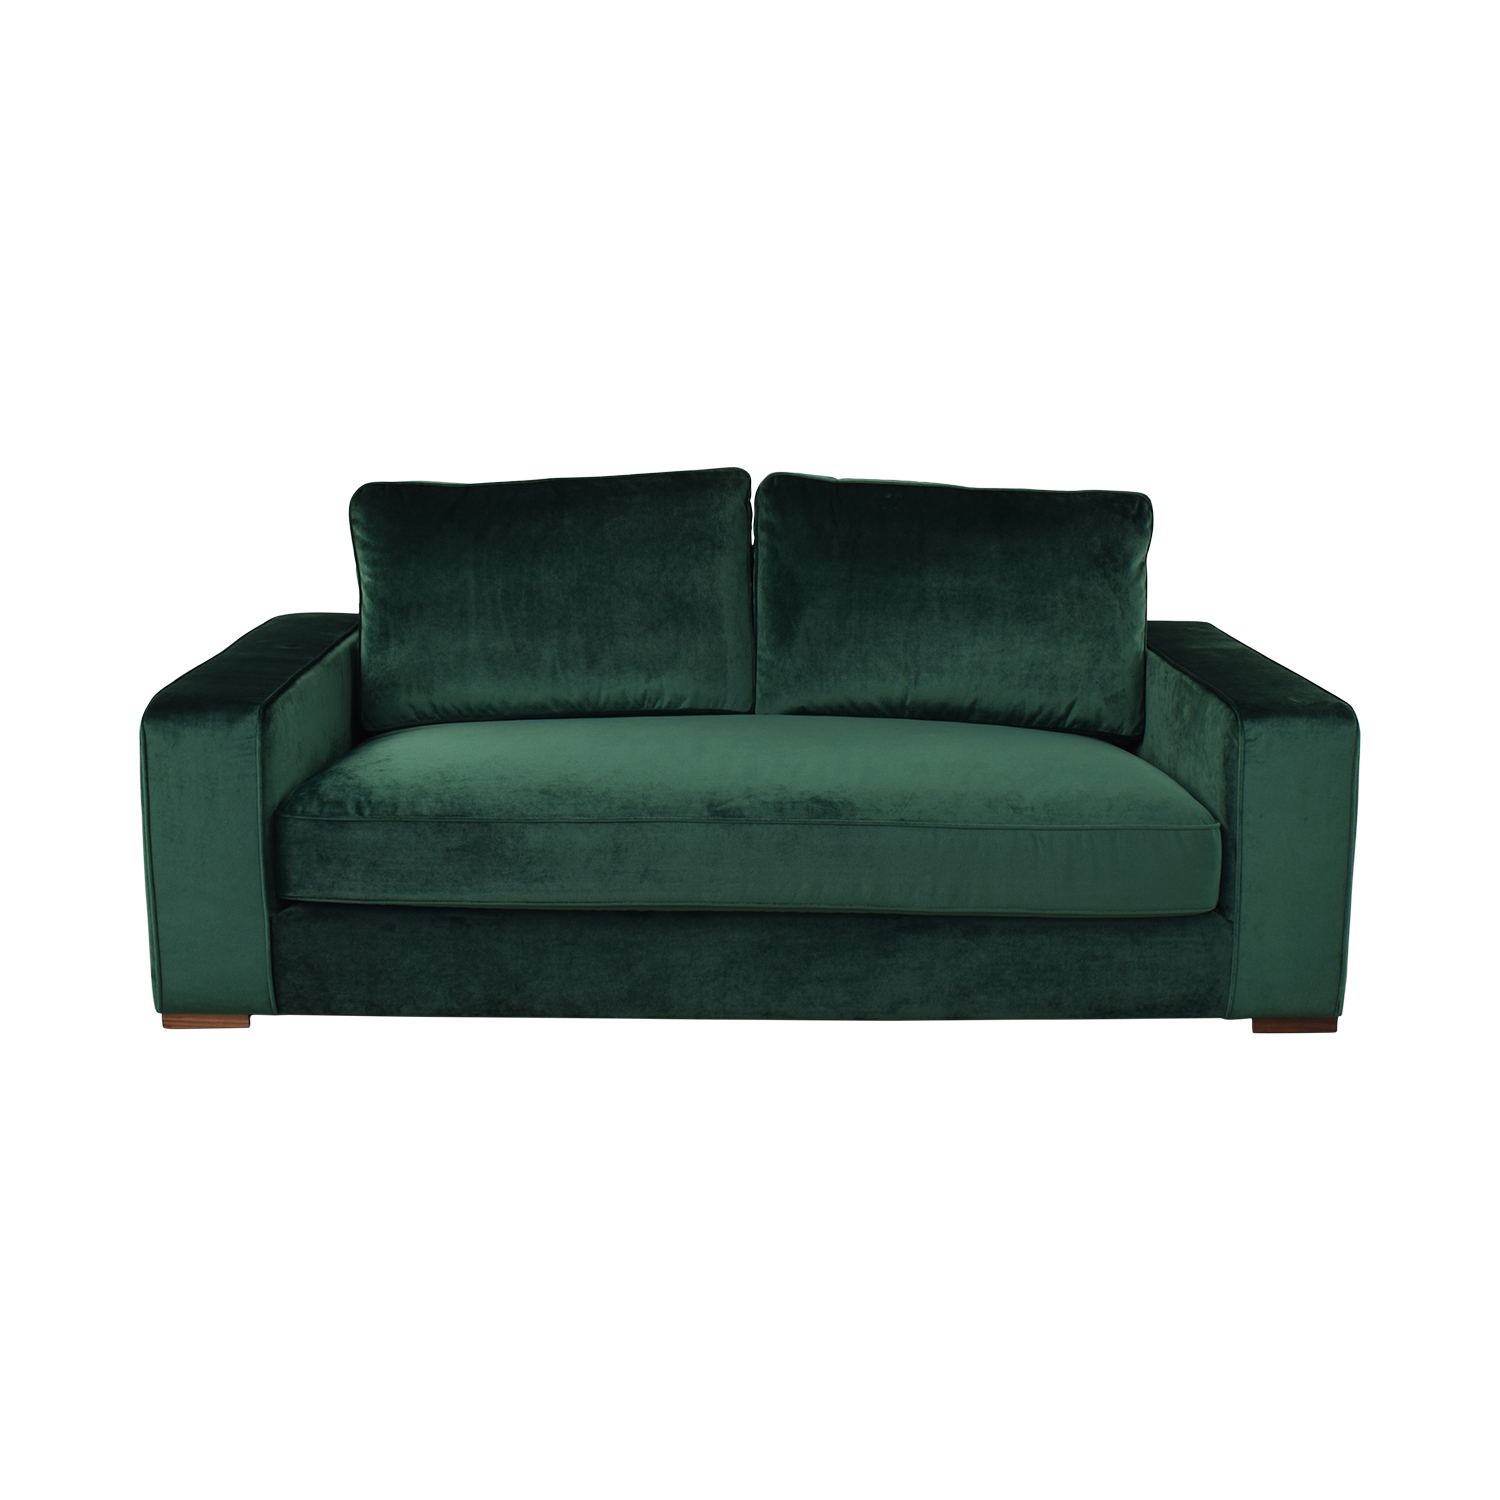 Interior Define Ainsley Emerald Green Velvet Single Cushion Loveseat second hand